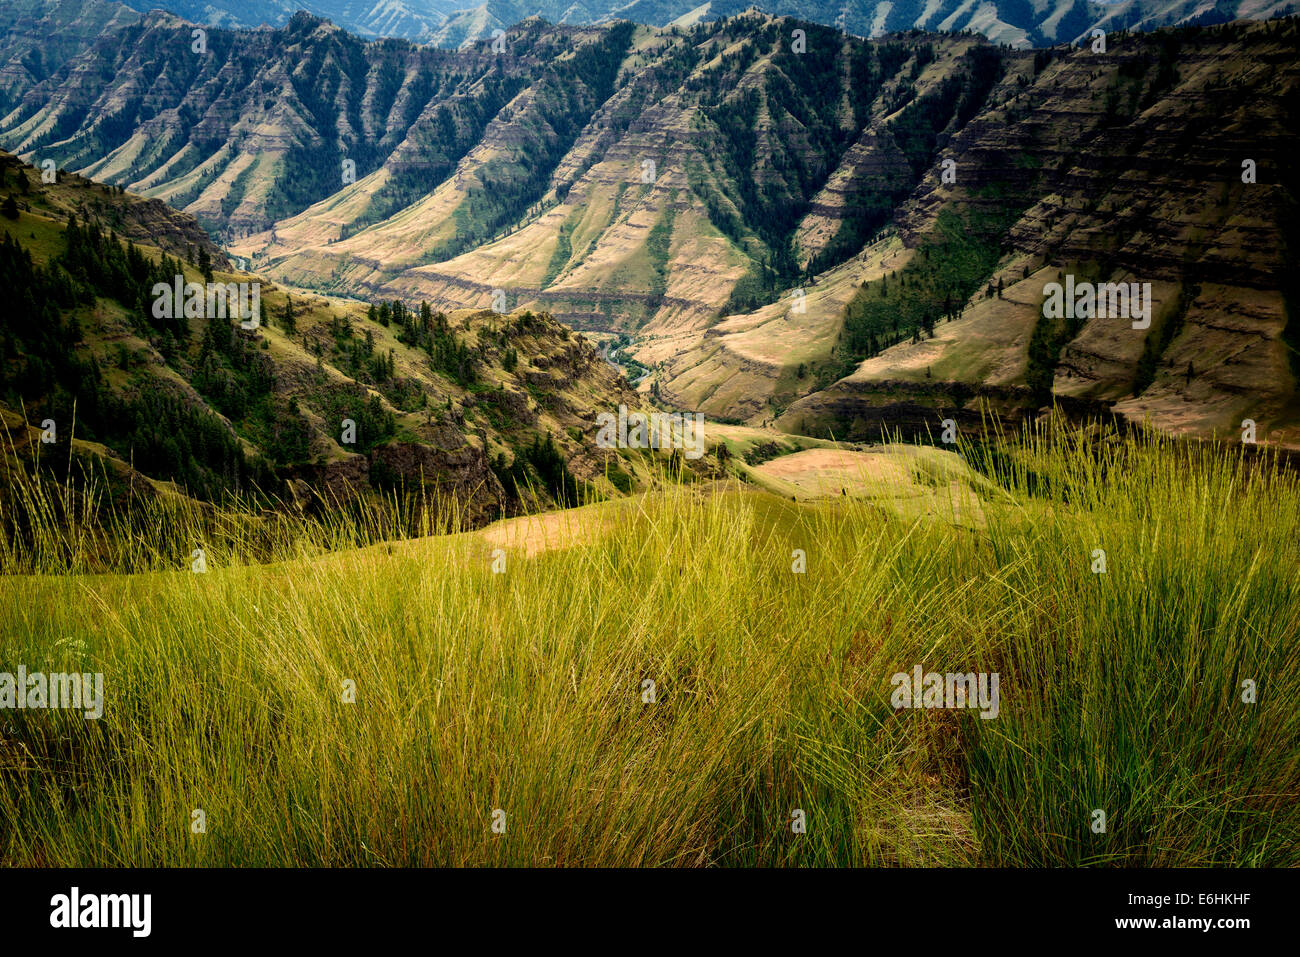 Grasses and Imnaha Canyon. Hells Canyon National Recreation Area, Oregon - Stock Image